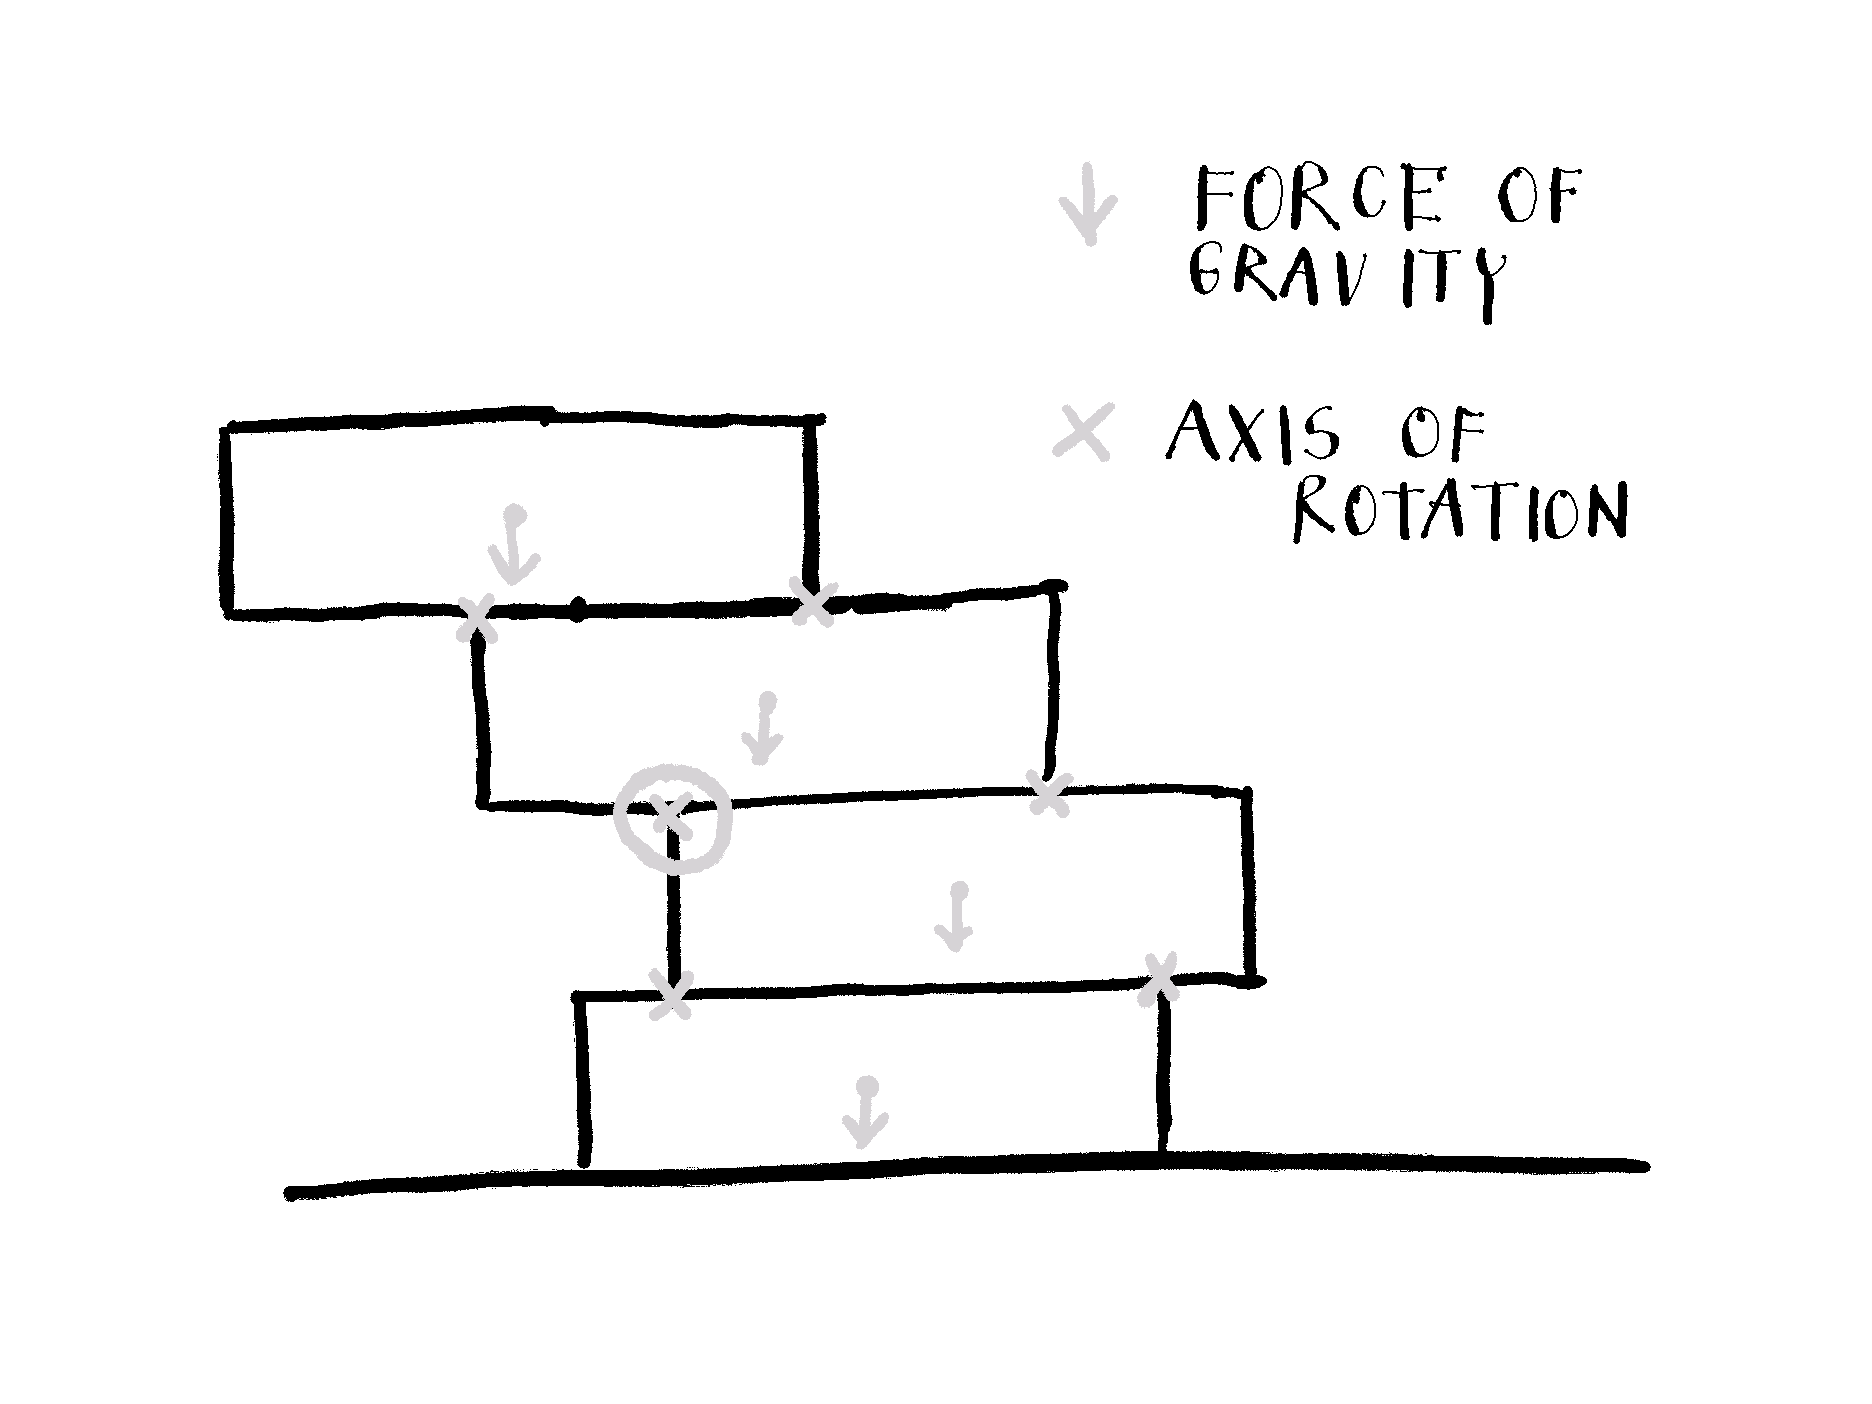 The Jenga tower with marked forces of gravity on blocks' centers and potential axes of rotation.